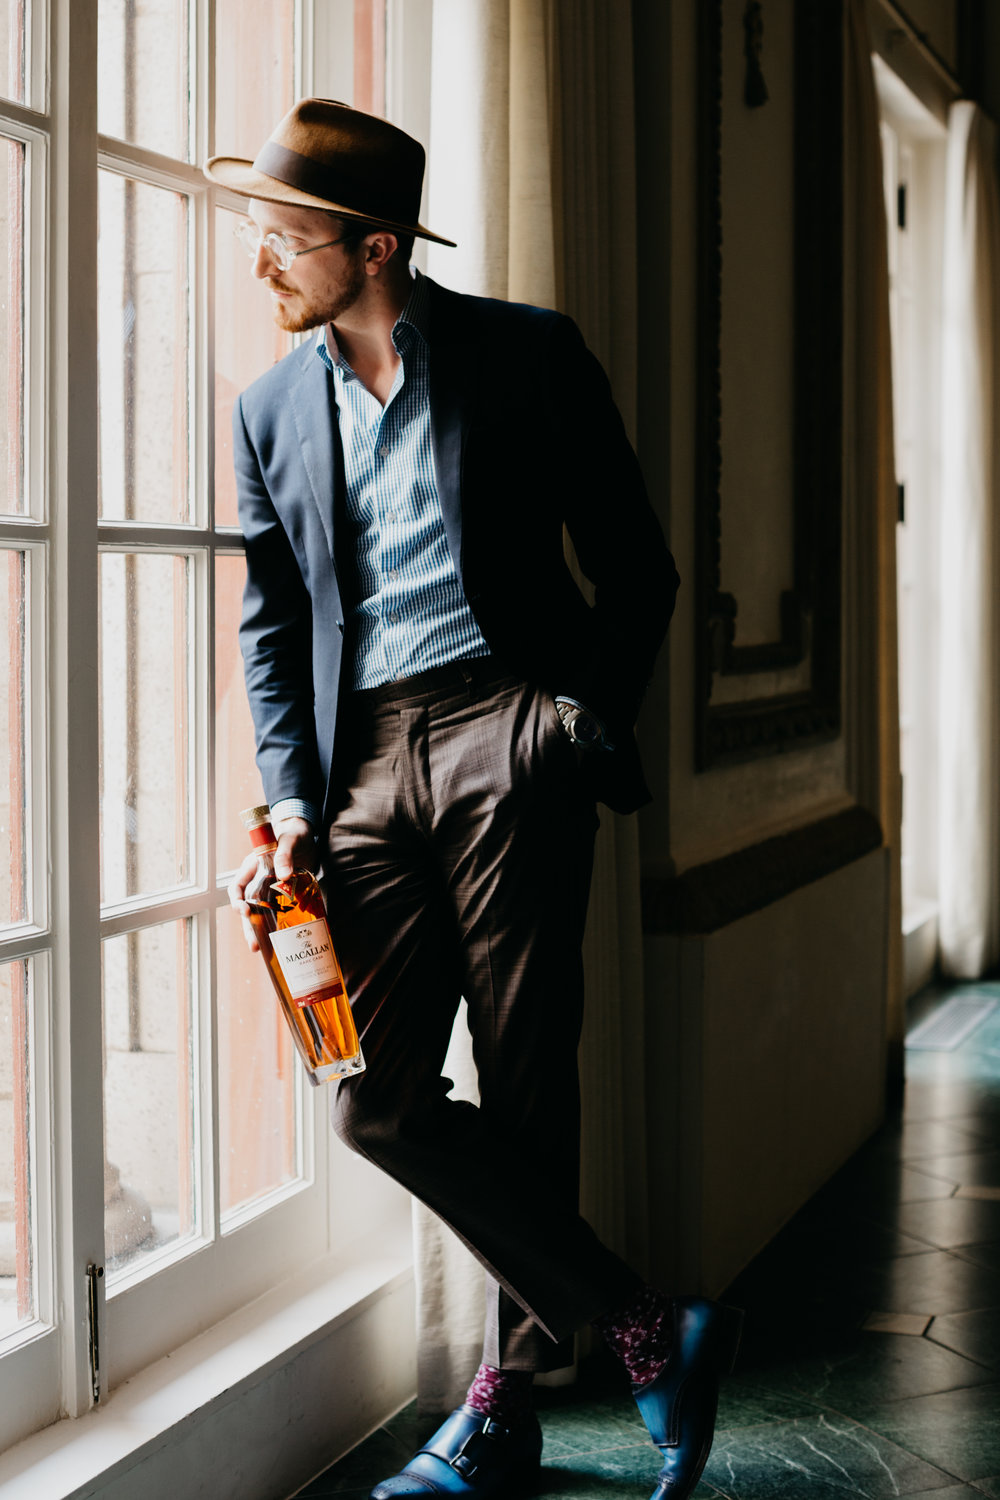 Sunflowerman standing by window with Macallan bottle in hand in The French Room. photo by Collin Sansom